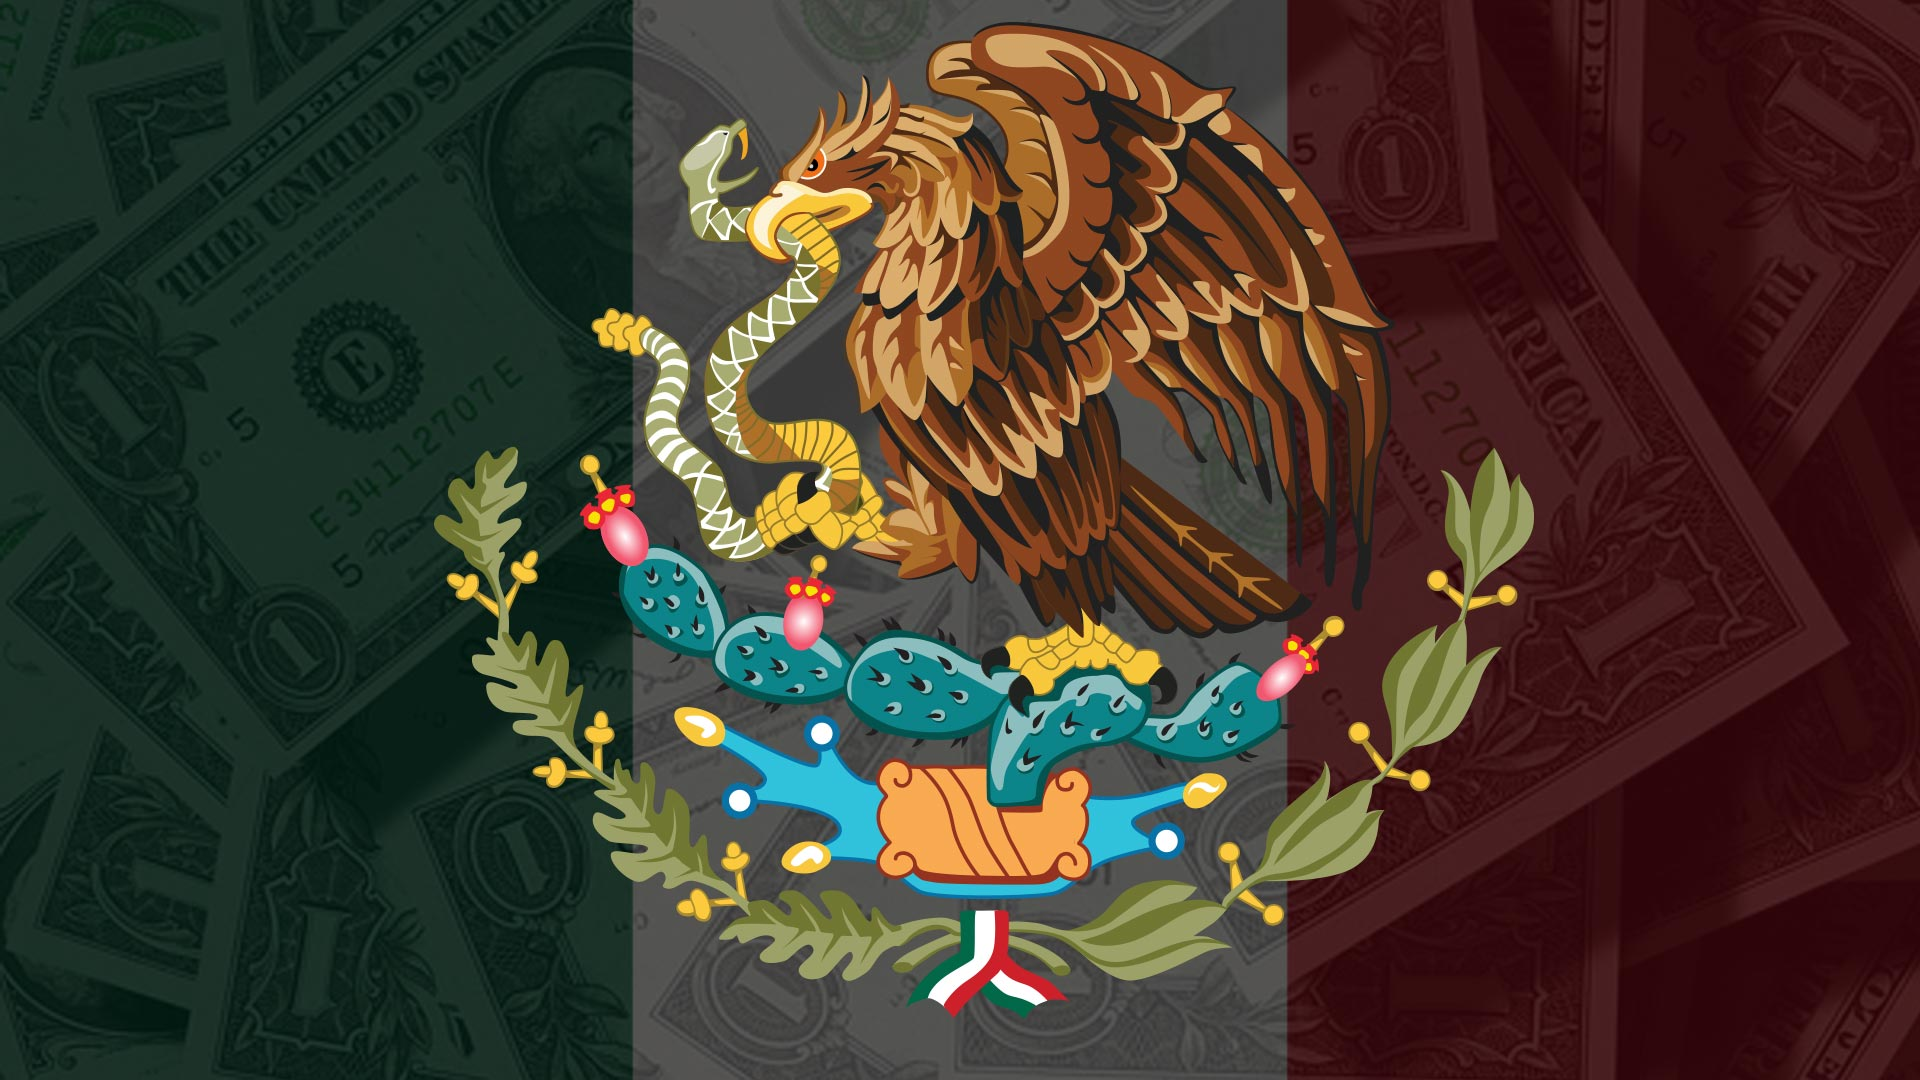 The value of remittances to Mexico has been on the rise in recent years.